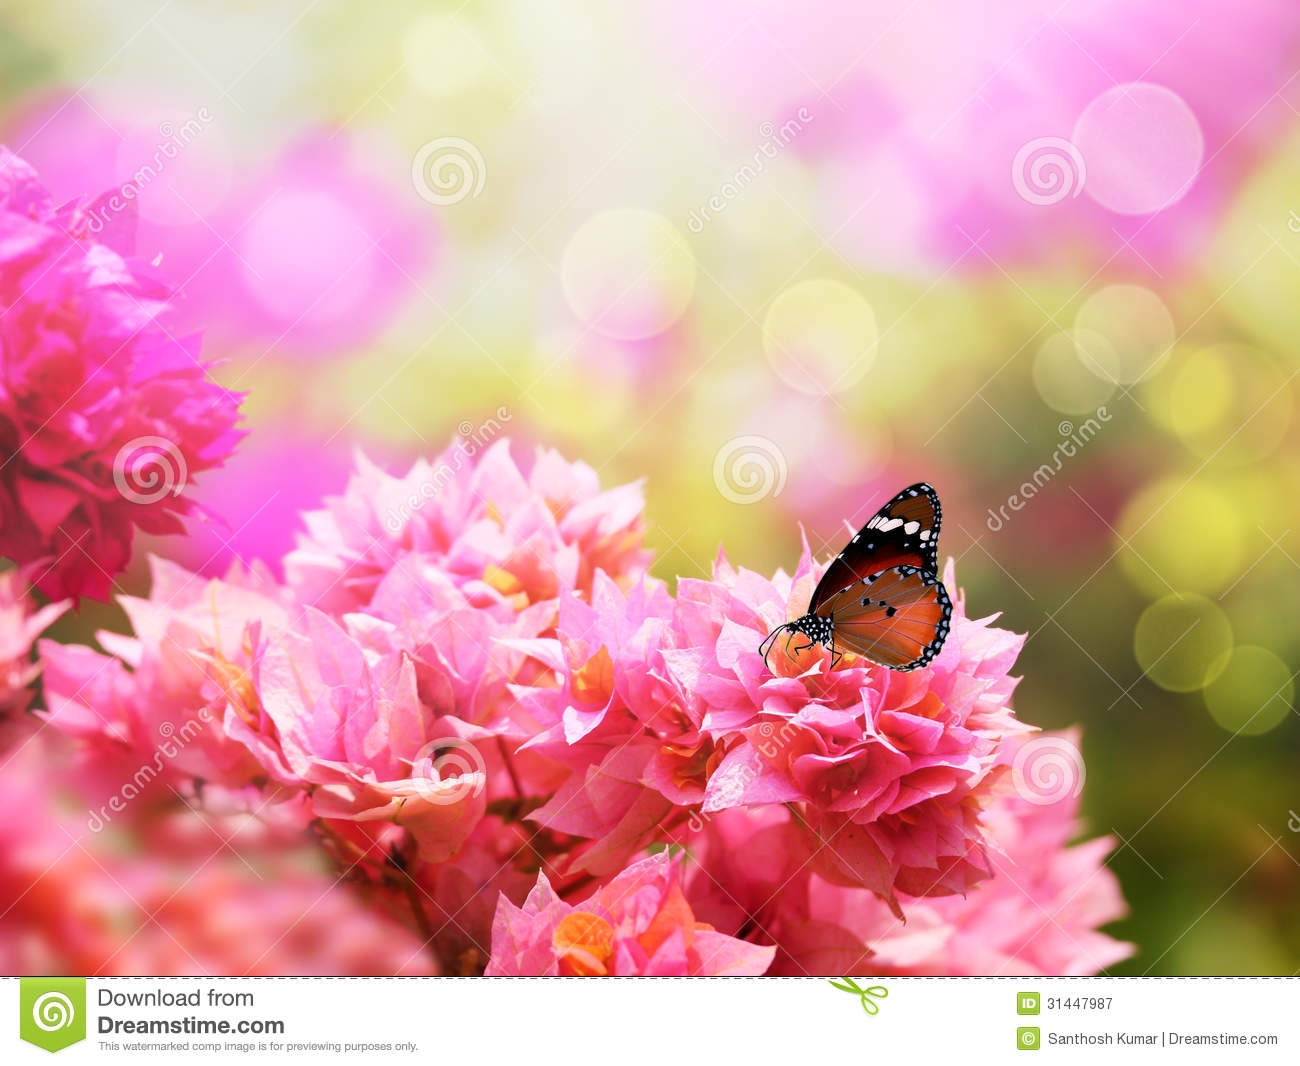 Beautiful pink flowers in the garden stock photography image - Majestic Monarch Butterfly On Beautiful Bougainvillea